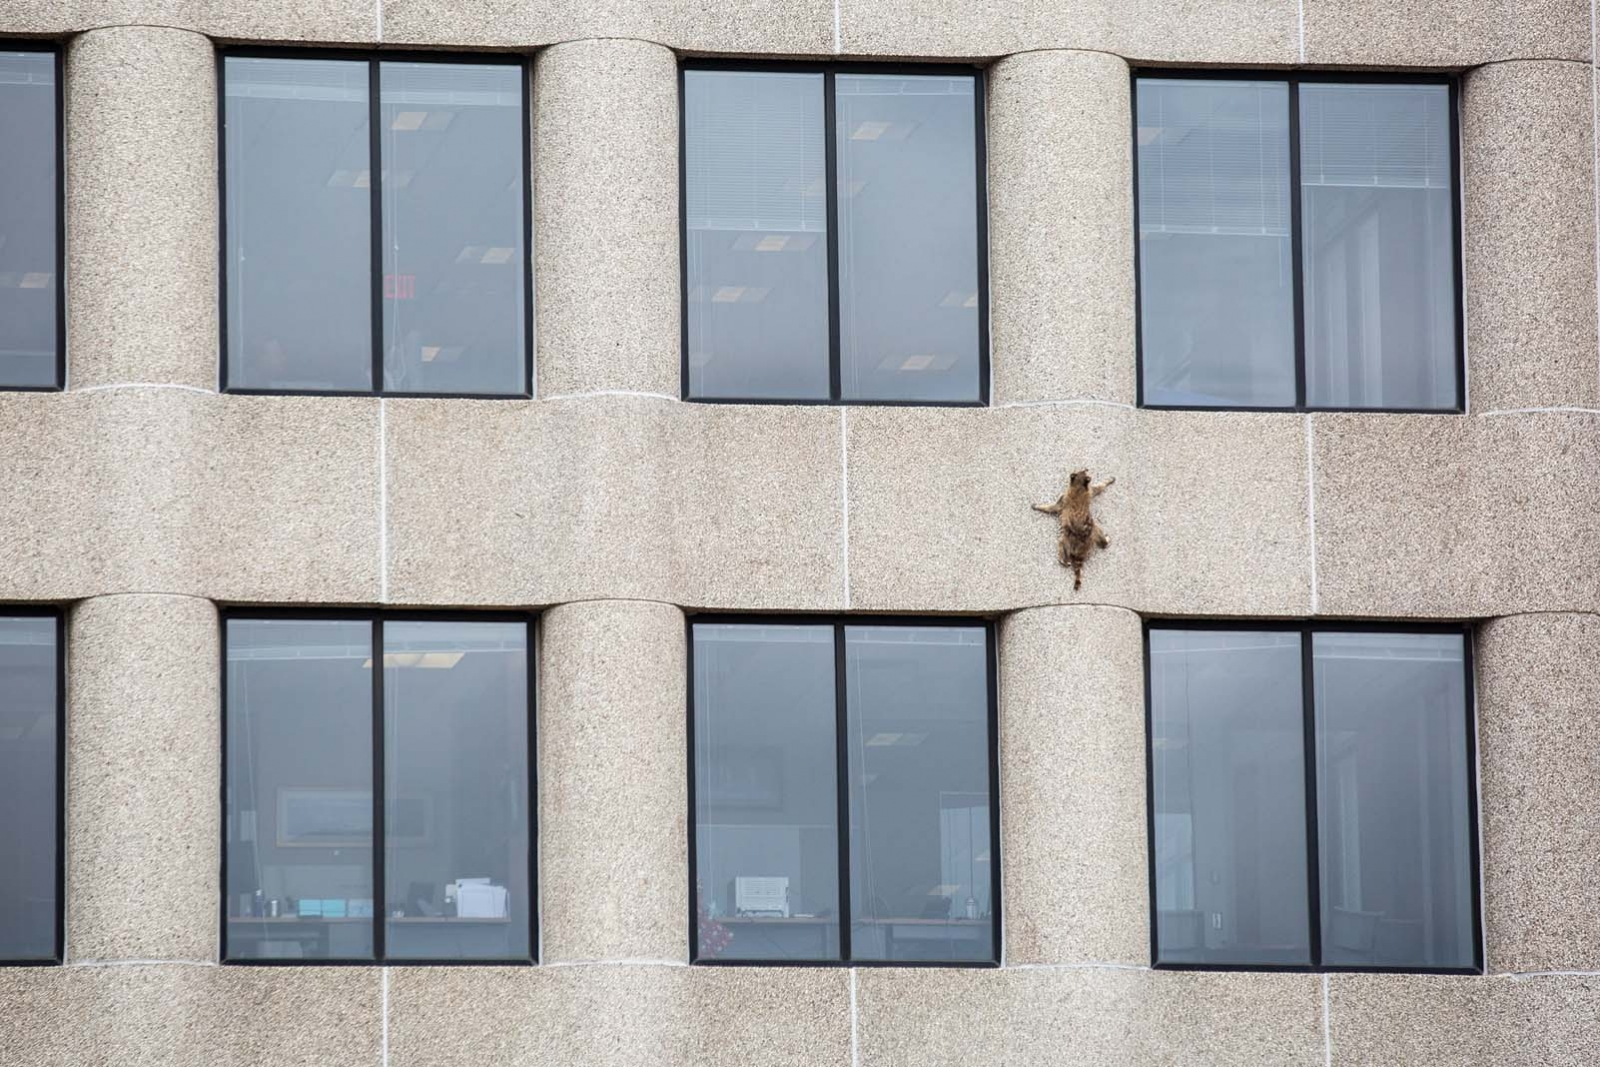 The raccoon scaling the exterior of the MPR News building in St. Paul, Minnesota.